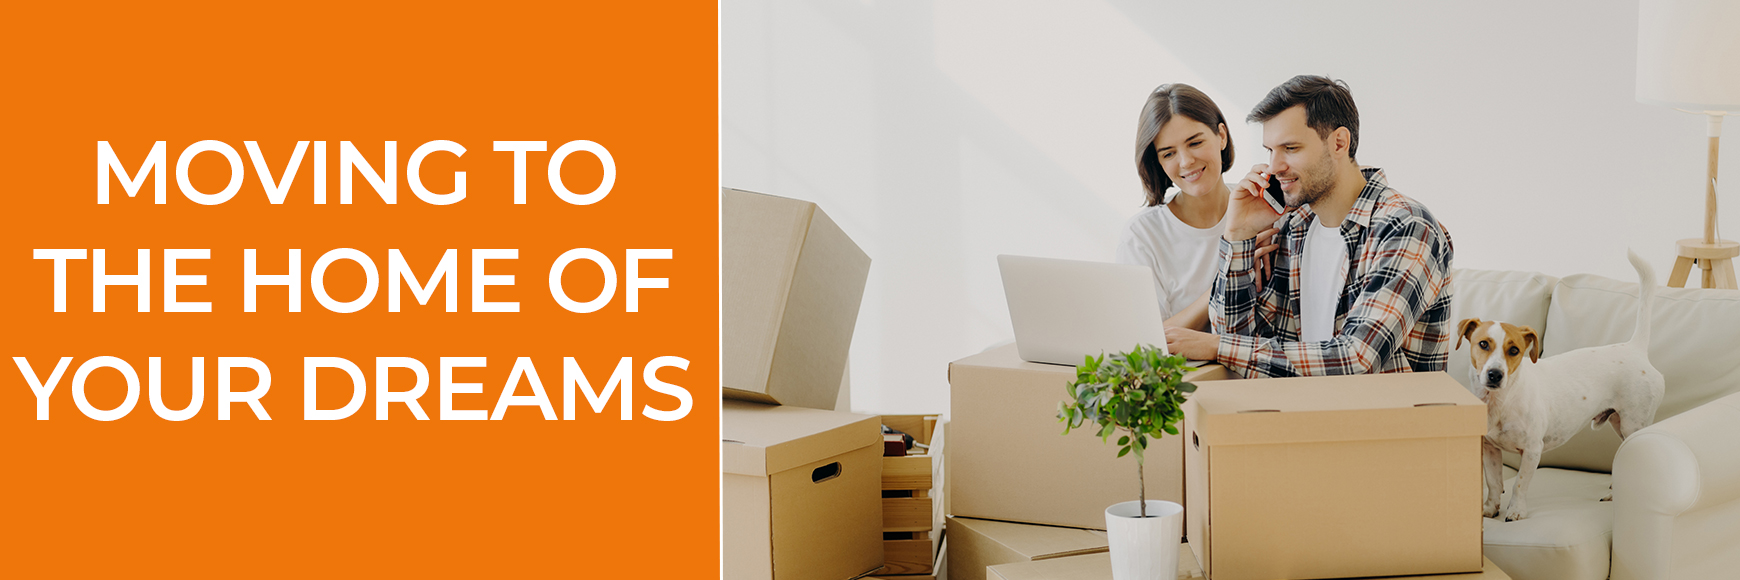 Moving to the home of your dreams-Banner-Orlando Homes Sales